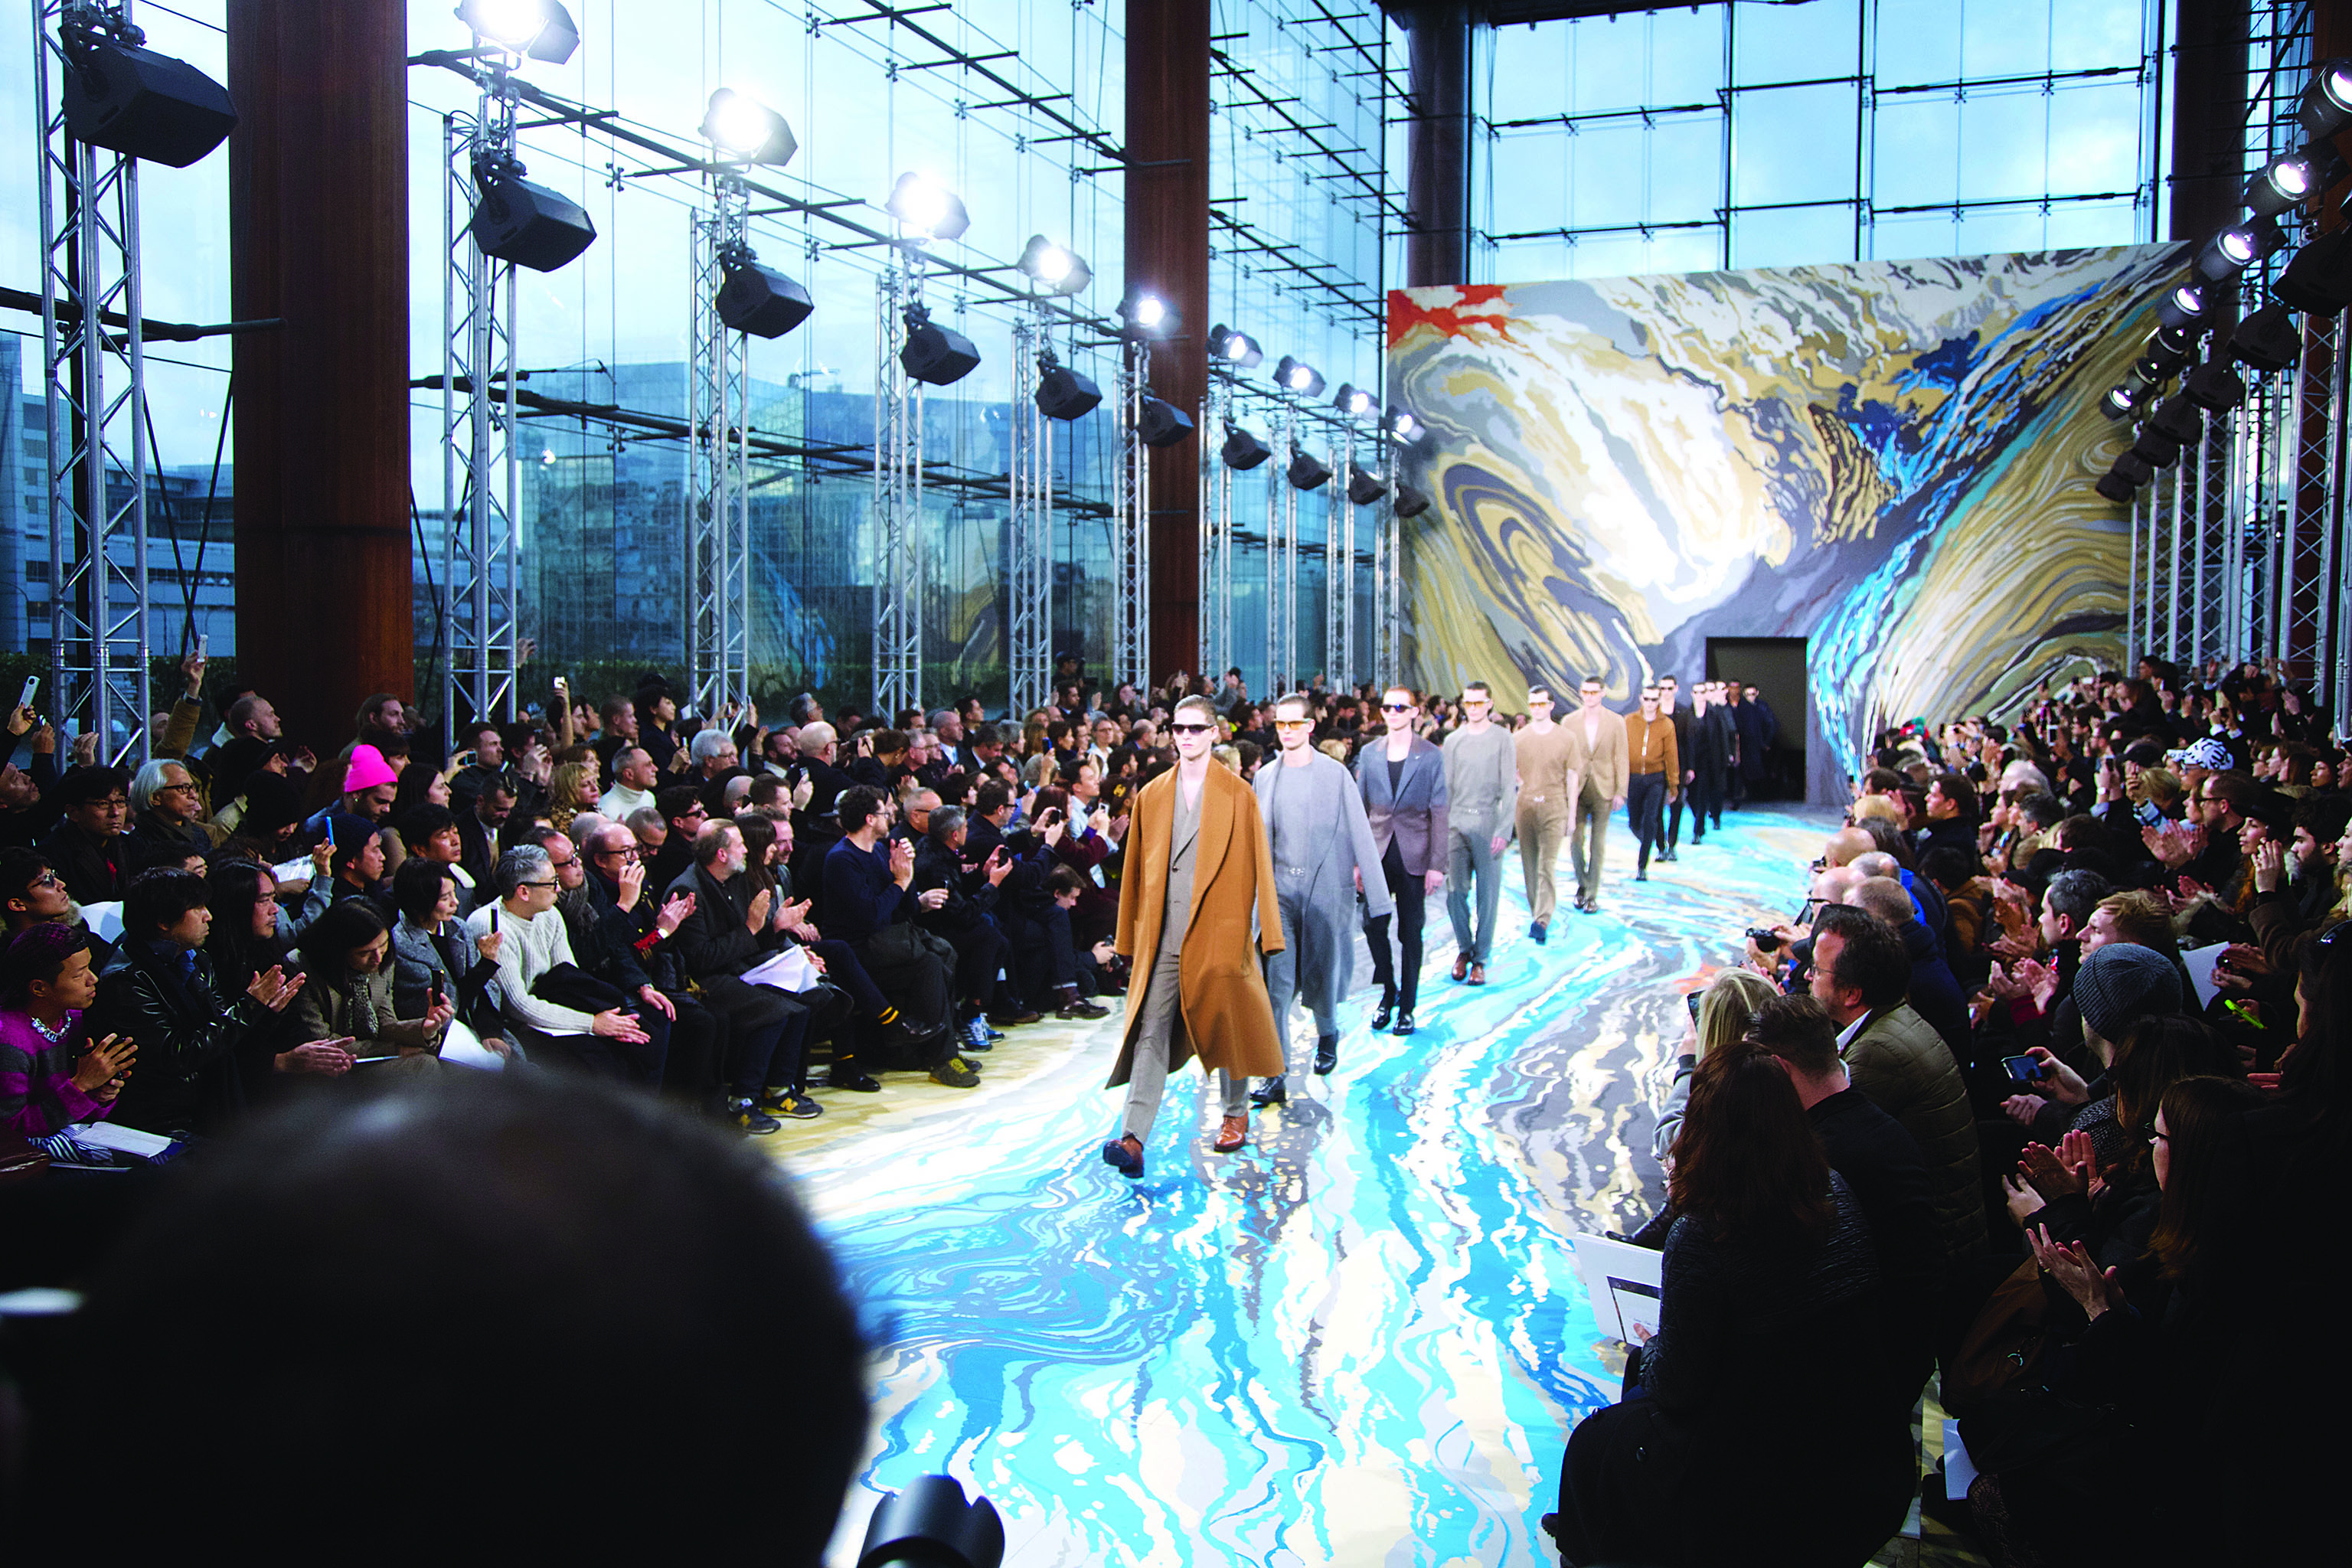 Models on the runway at Louis Vuitton's Fall 2014 menswear show.